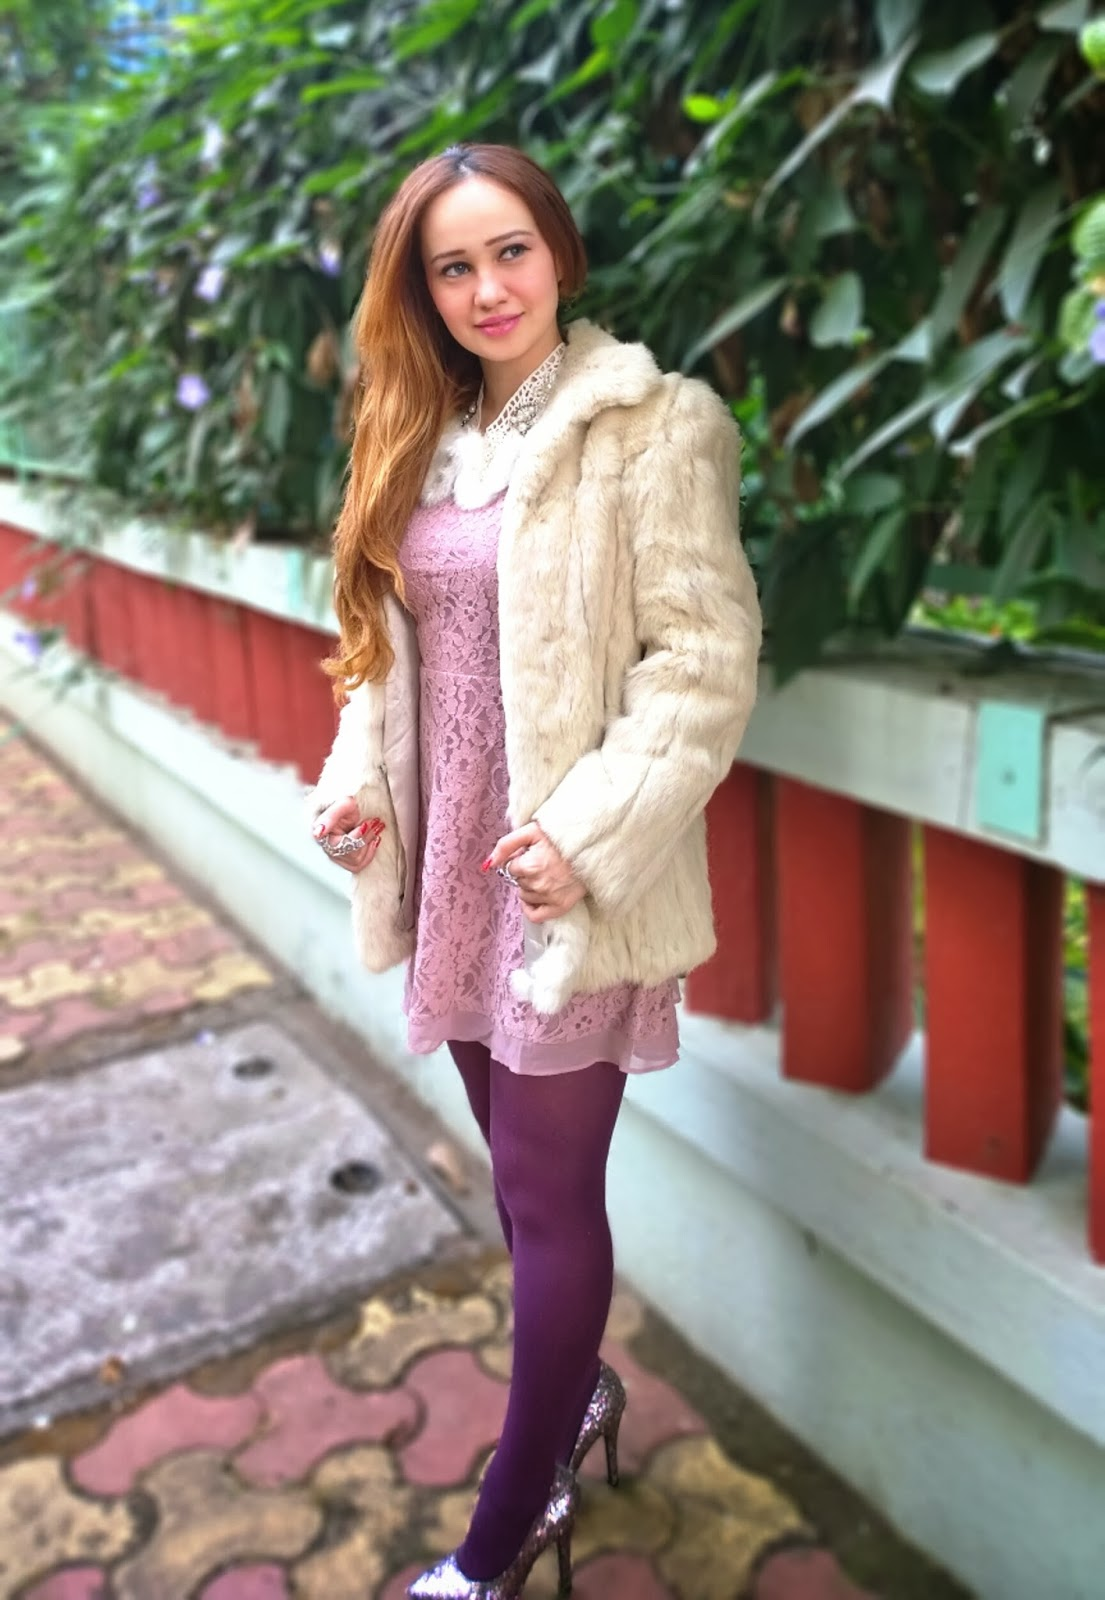 Blush lace Dress, White Faux Fur Overcoat